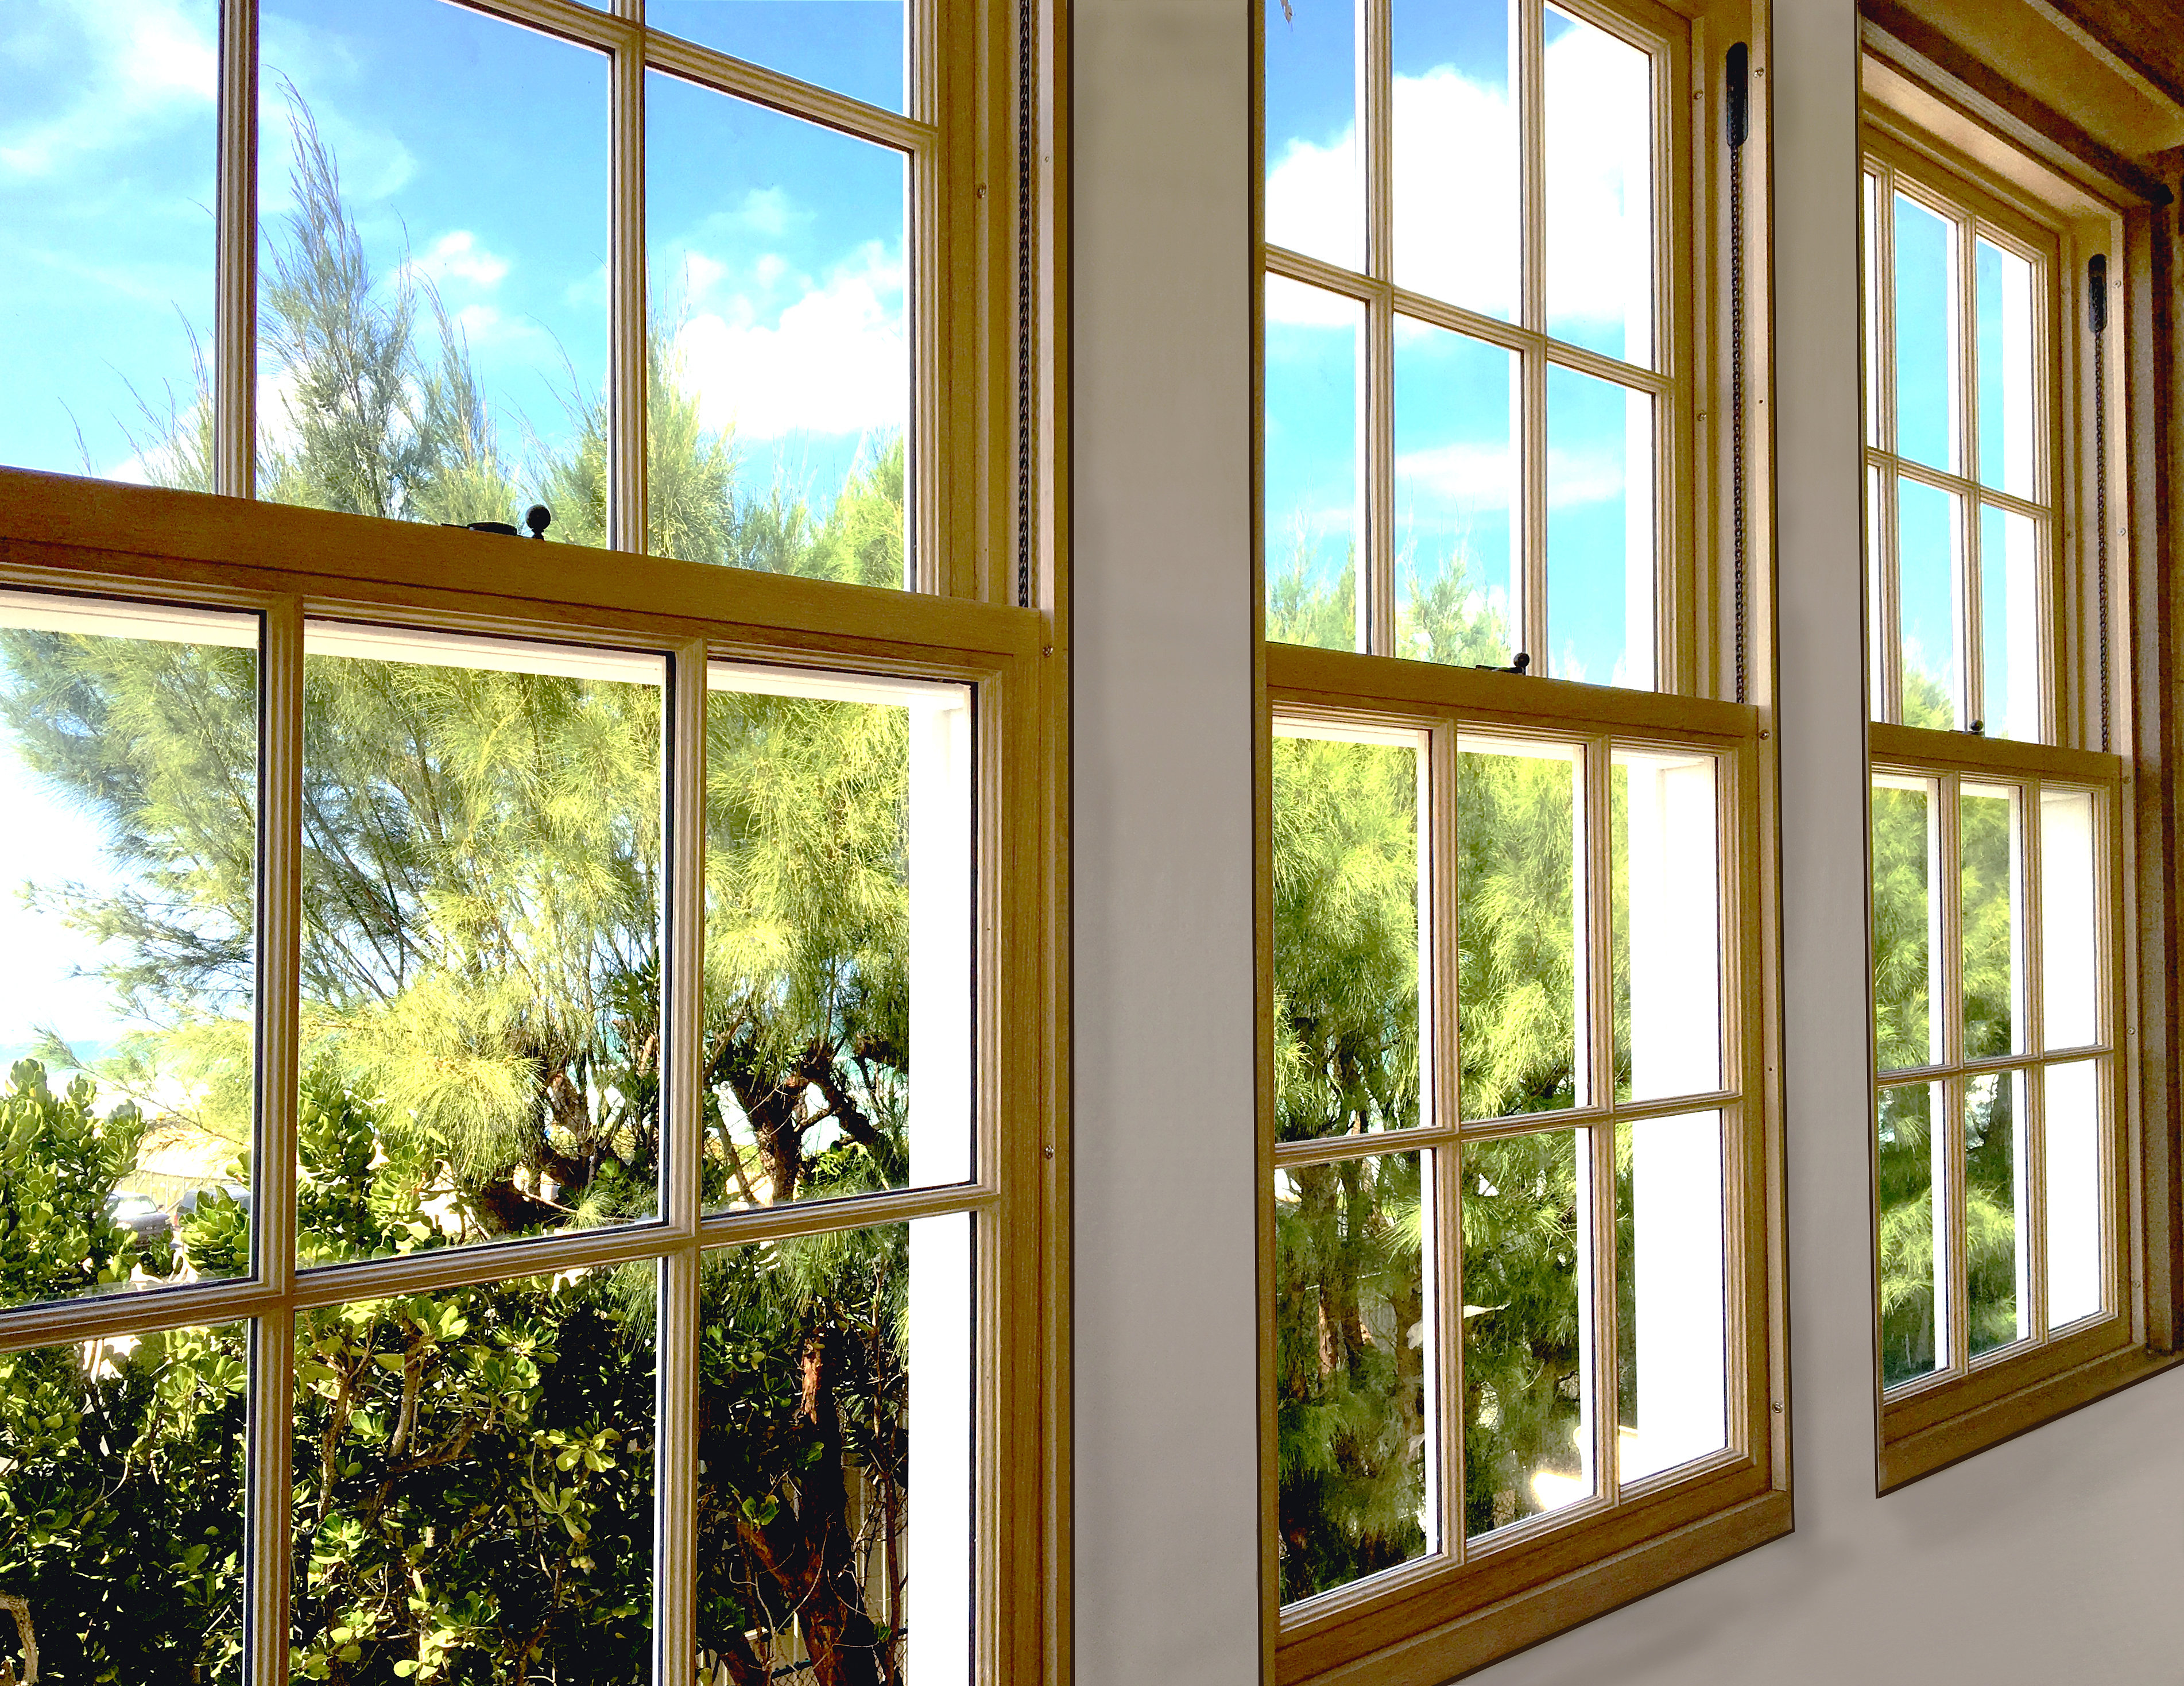 Florida Window And Door Is A Full Service Hurricane Protection Company That  Provides: